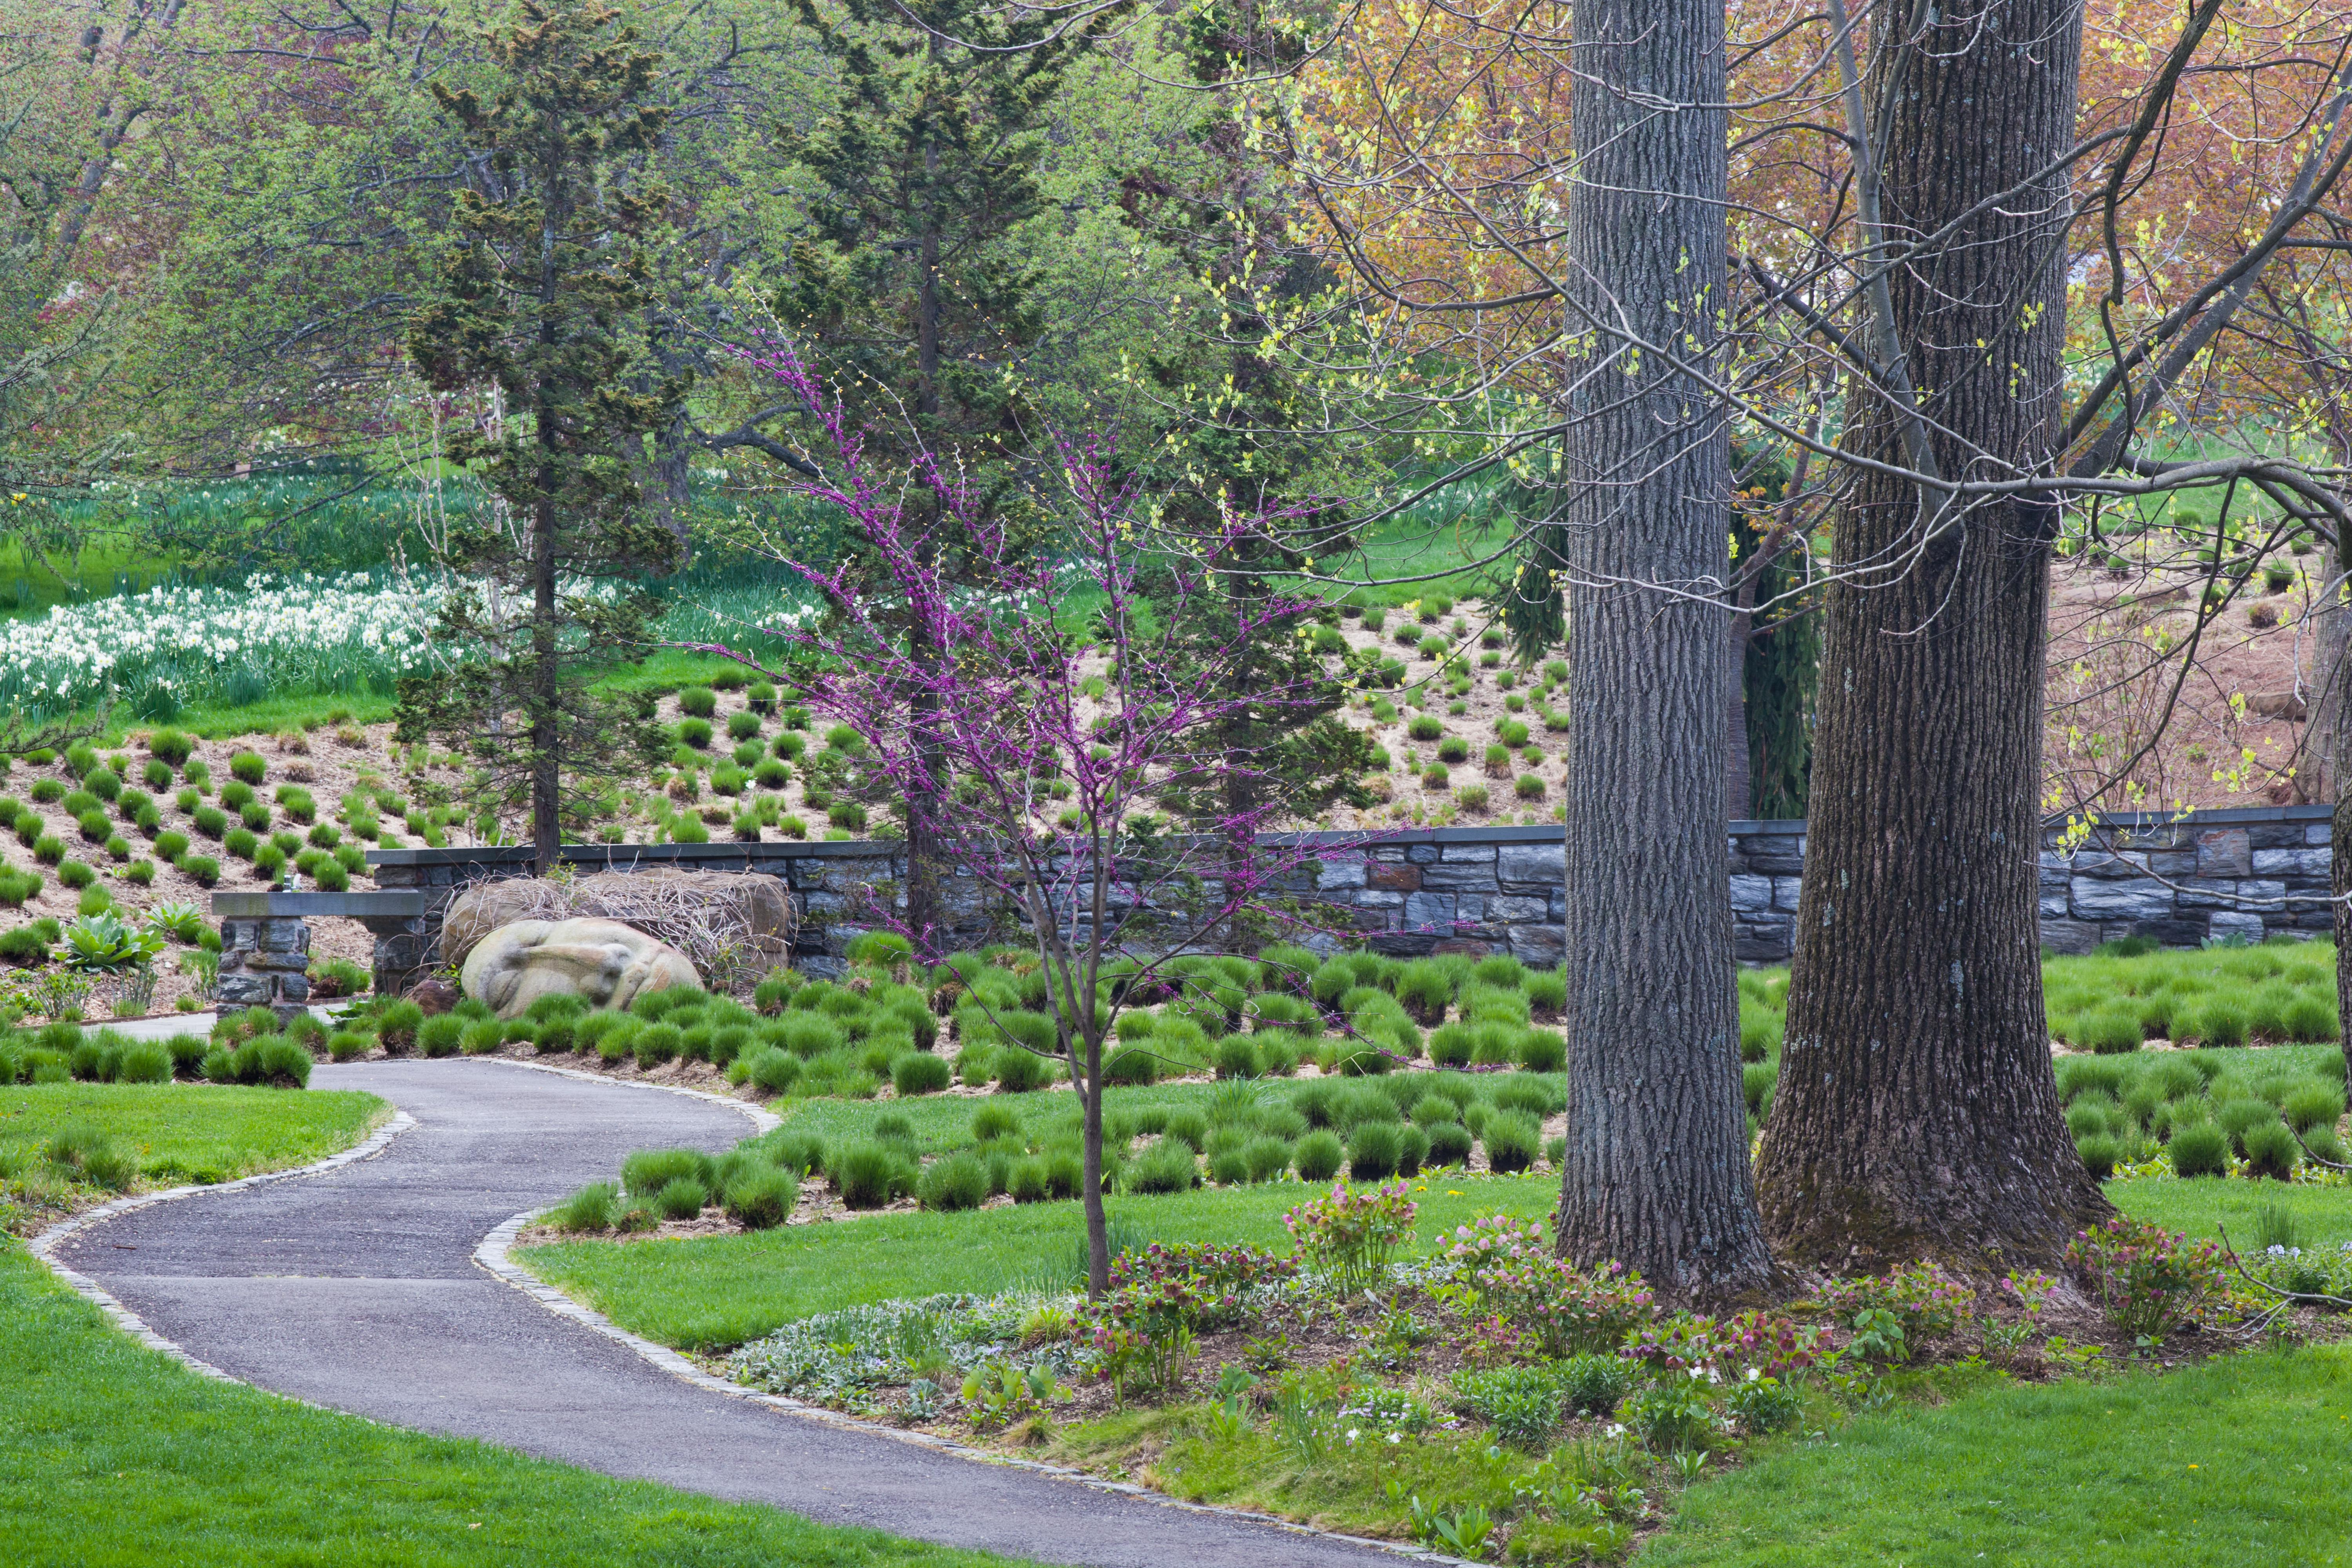 A Path Leads Past The Sporobolus Heterolepis Meadow, One Of Many Lawn  Alternative Areas Of The Gardens At Chanticleer Outside Philadelphia, PA.